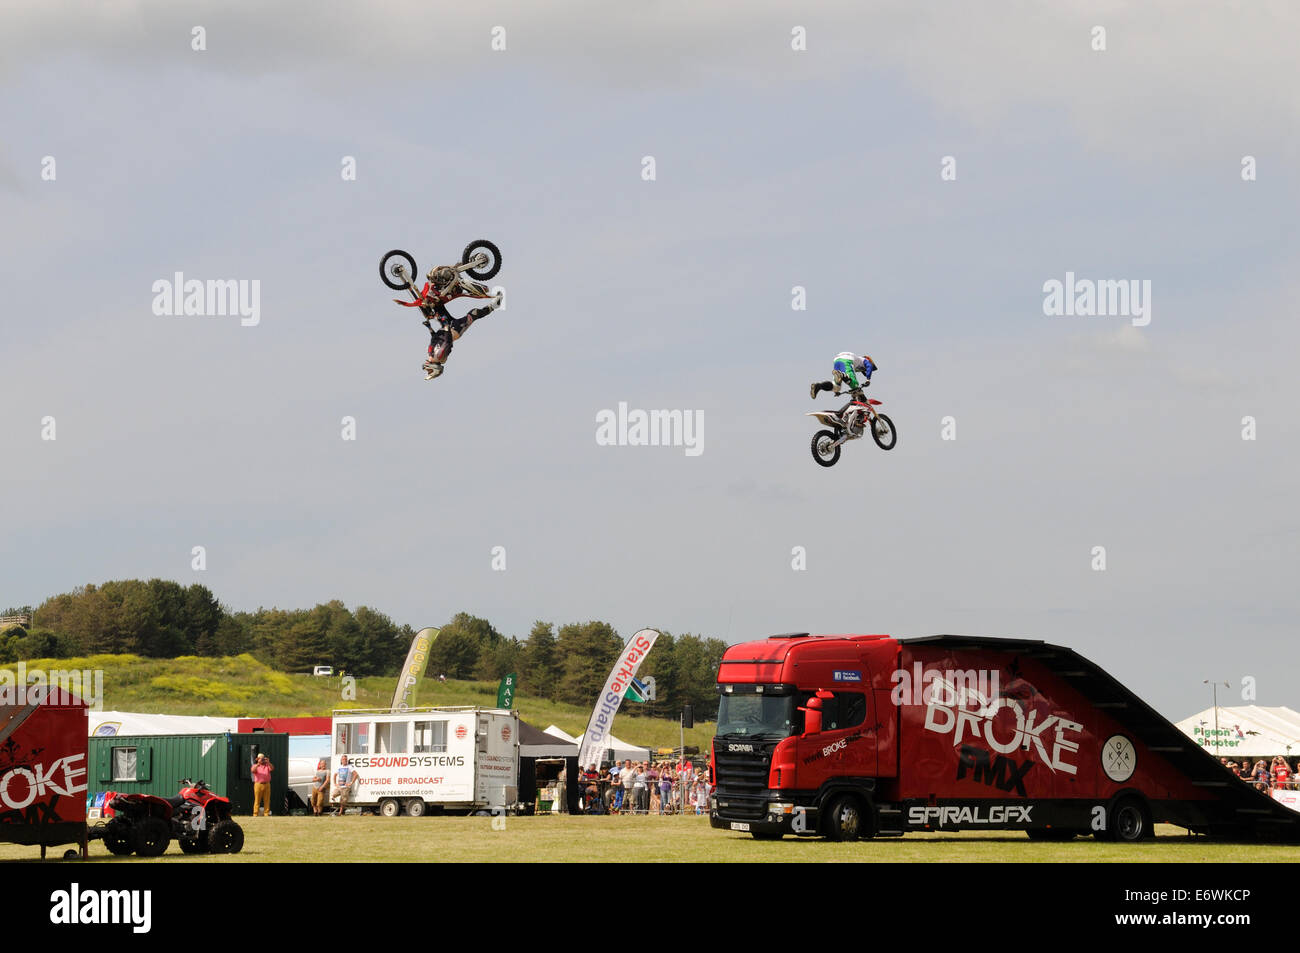 Motorcycle Display Team entertaining the crowd at a Show - Stock Image